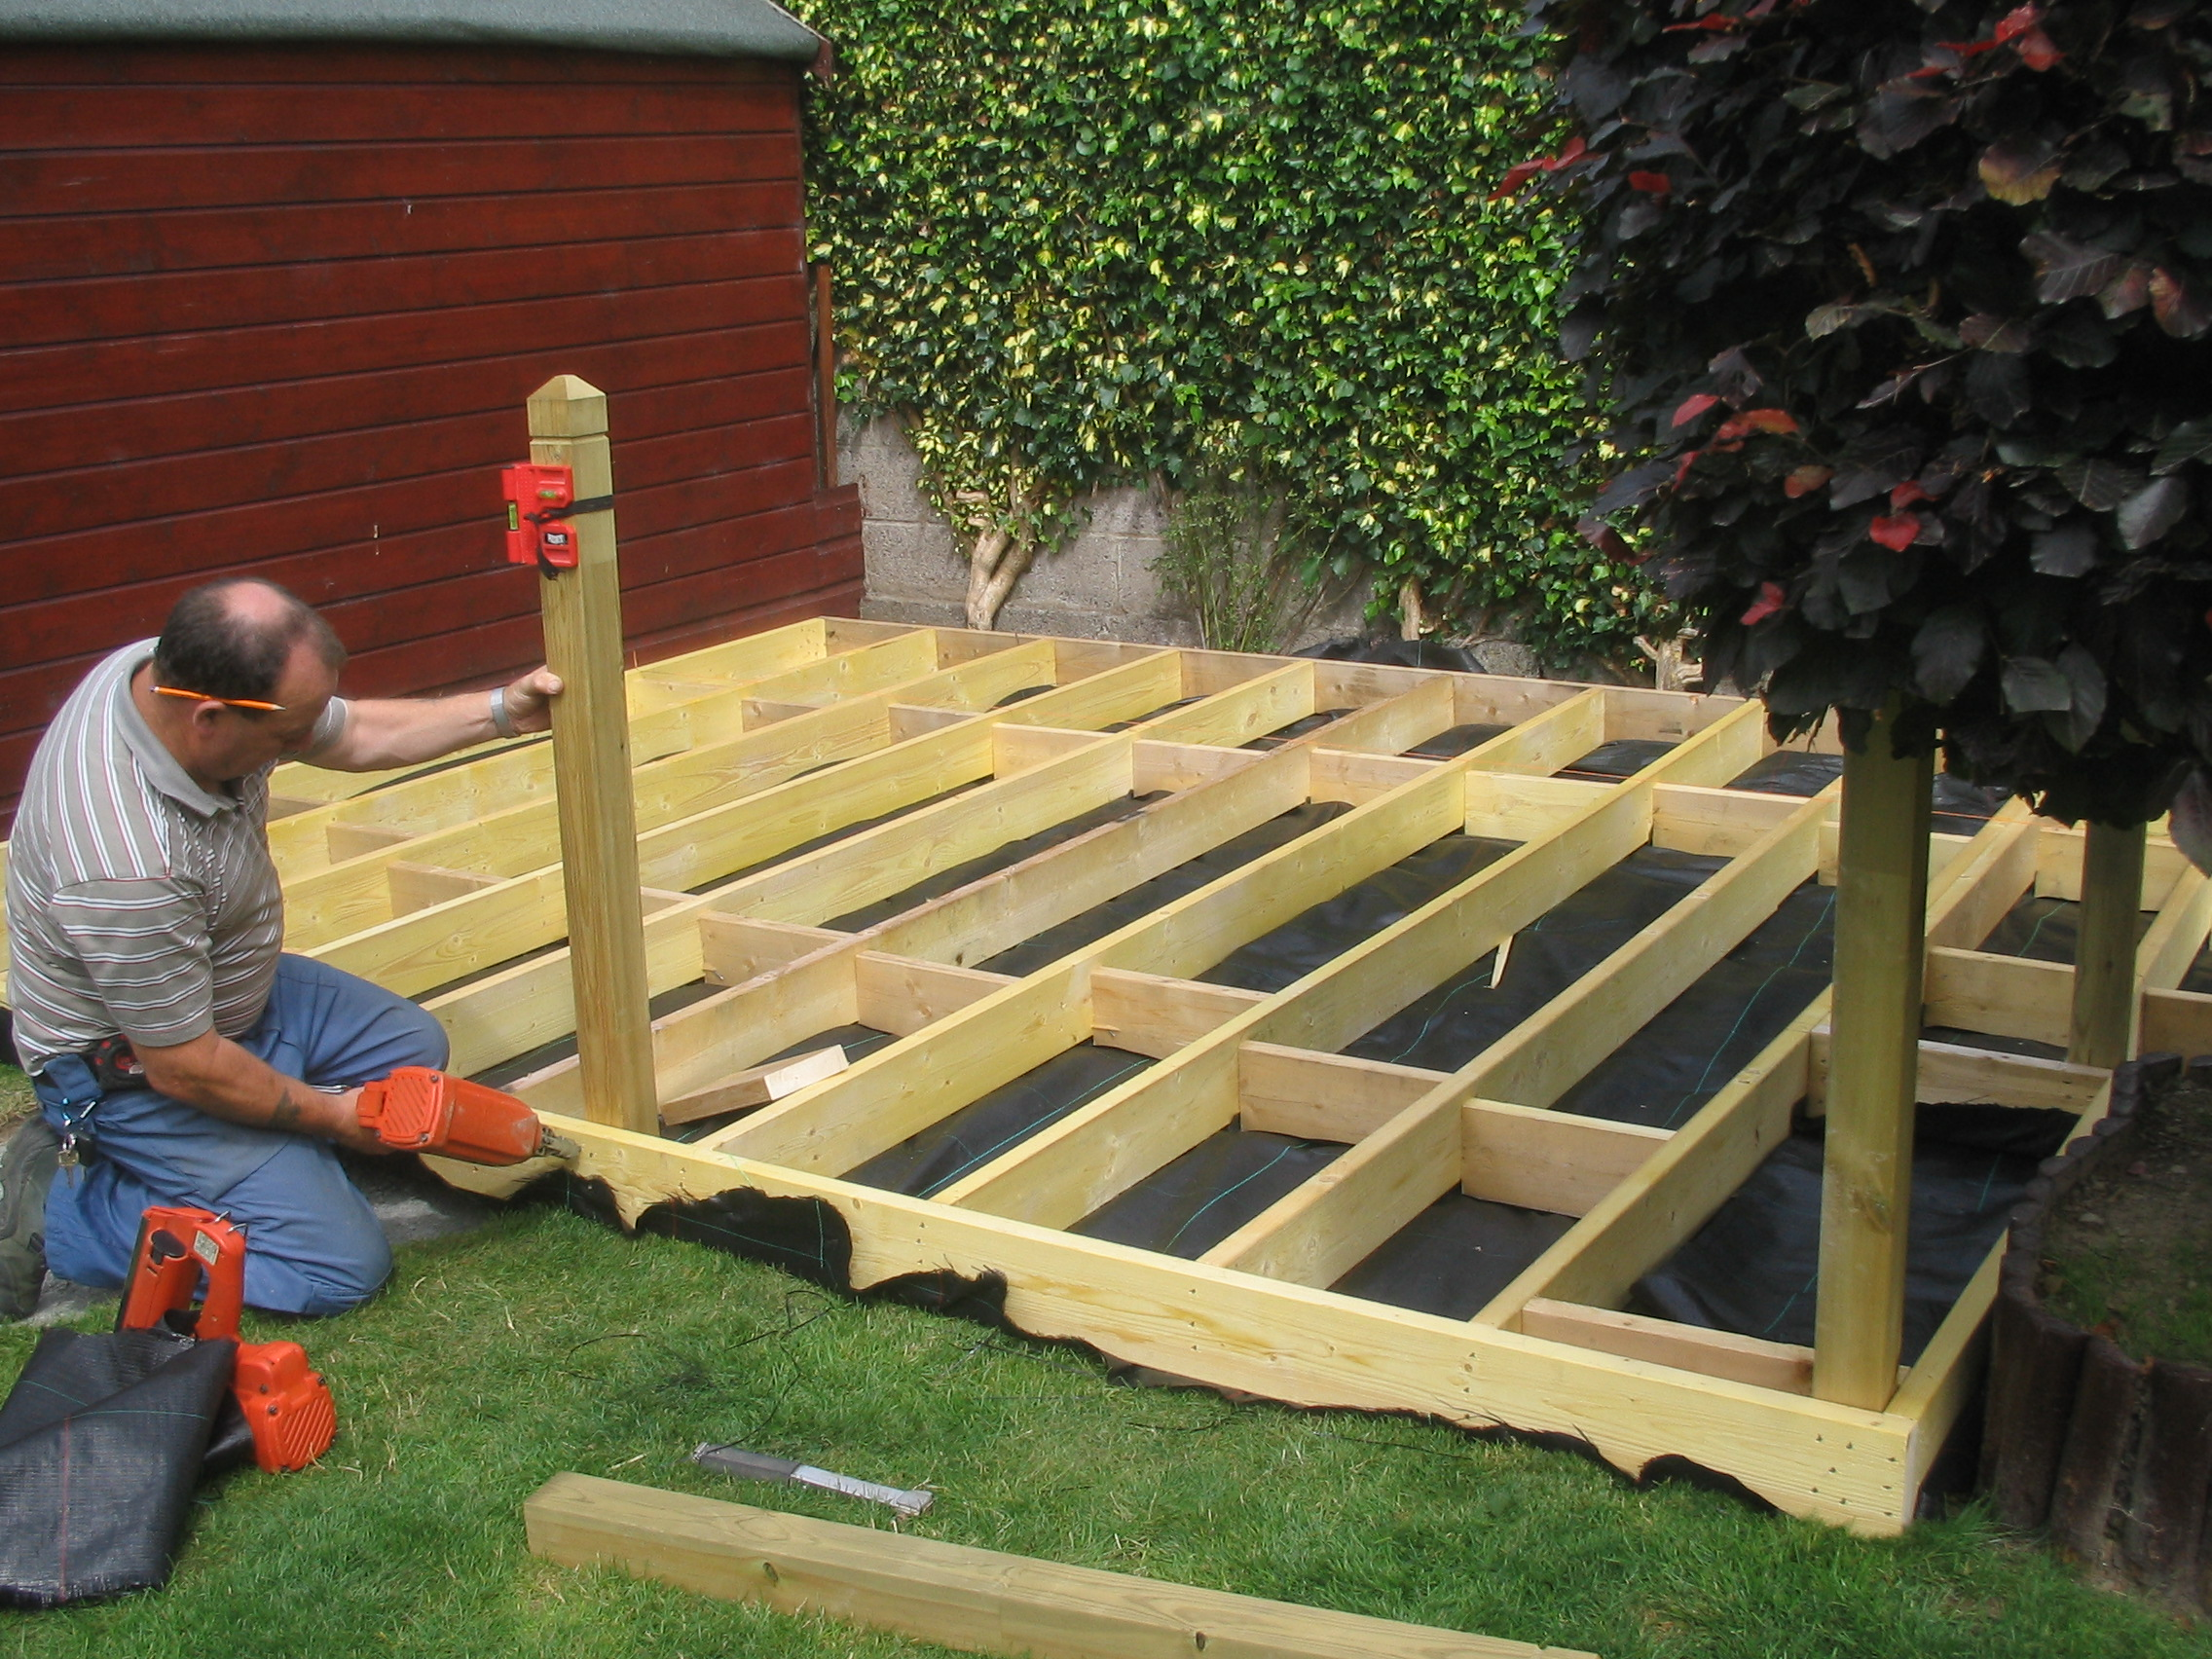 A-4rd A-Deck, Our Services, Timber Decking Specialists, Timber Decks ...